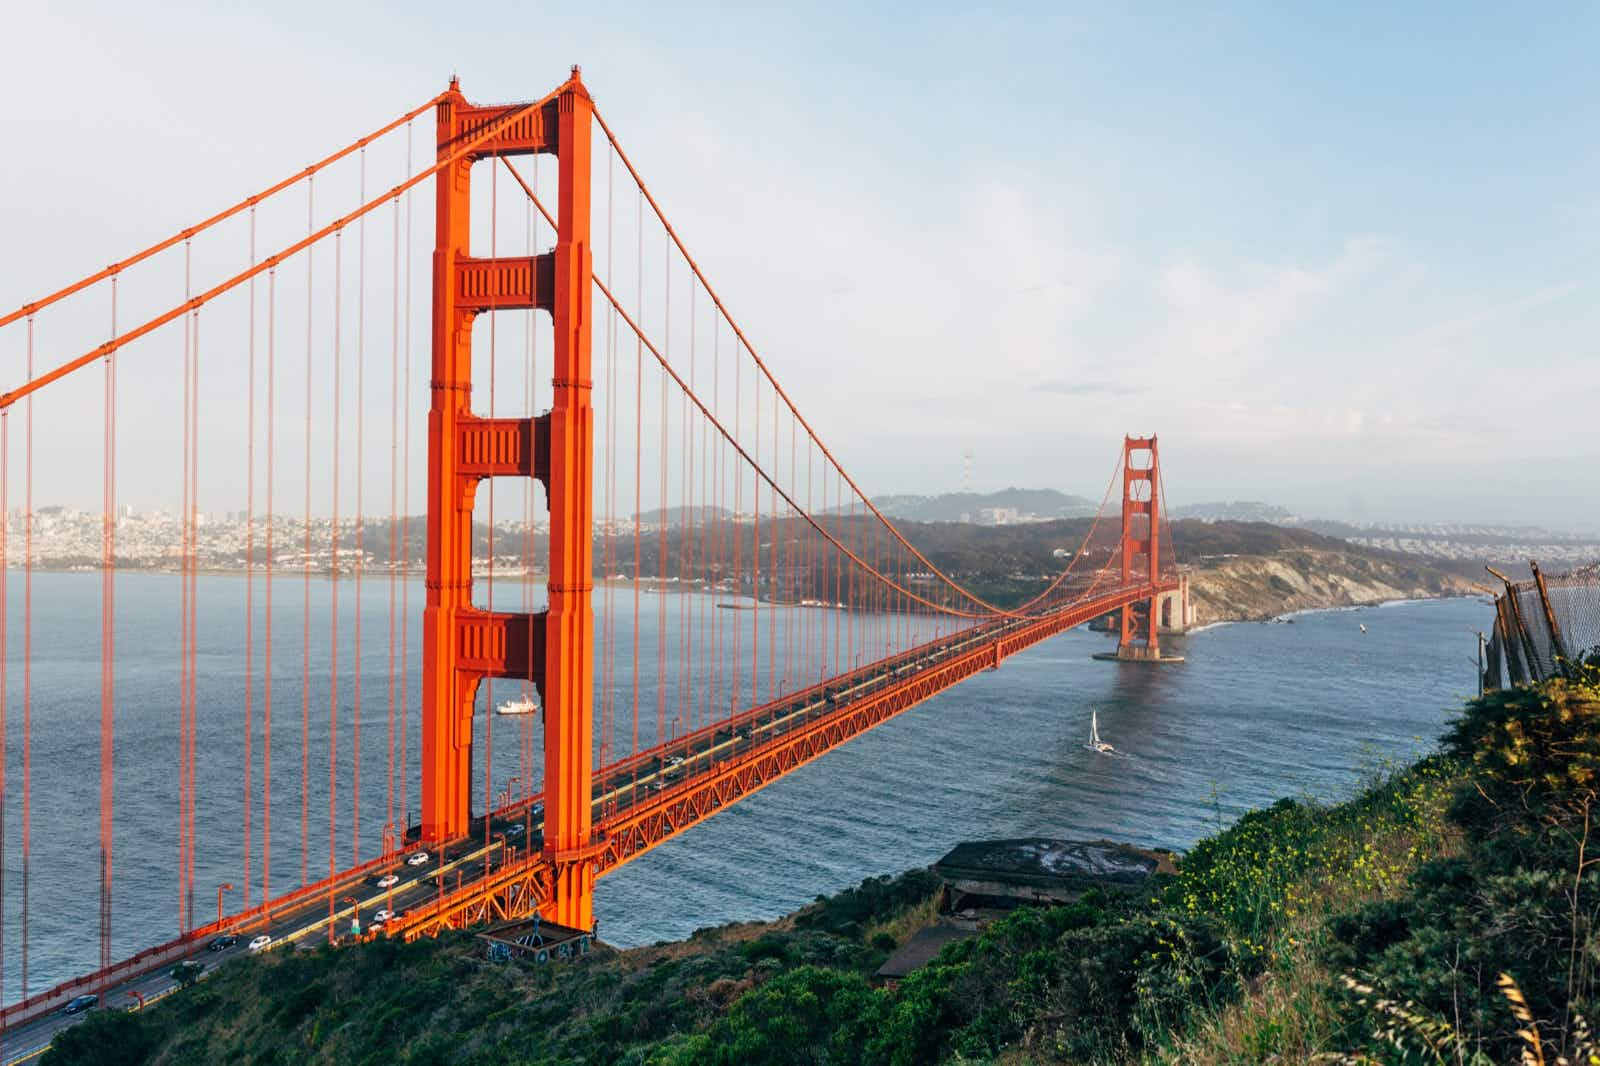 San Francisco is perfectly positioned to get out of the city and into some wonderful adventures, even for just a day ©Deimagine / Getty Images